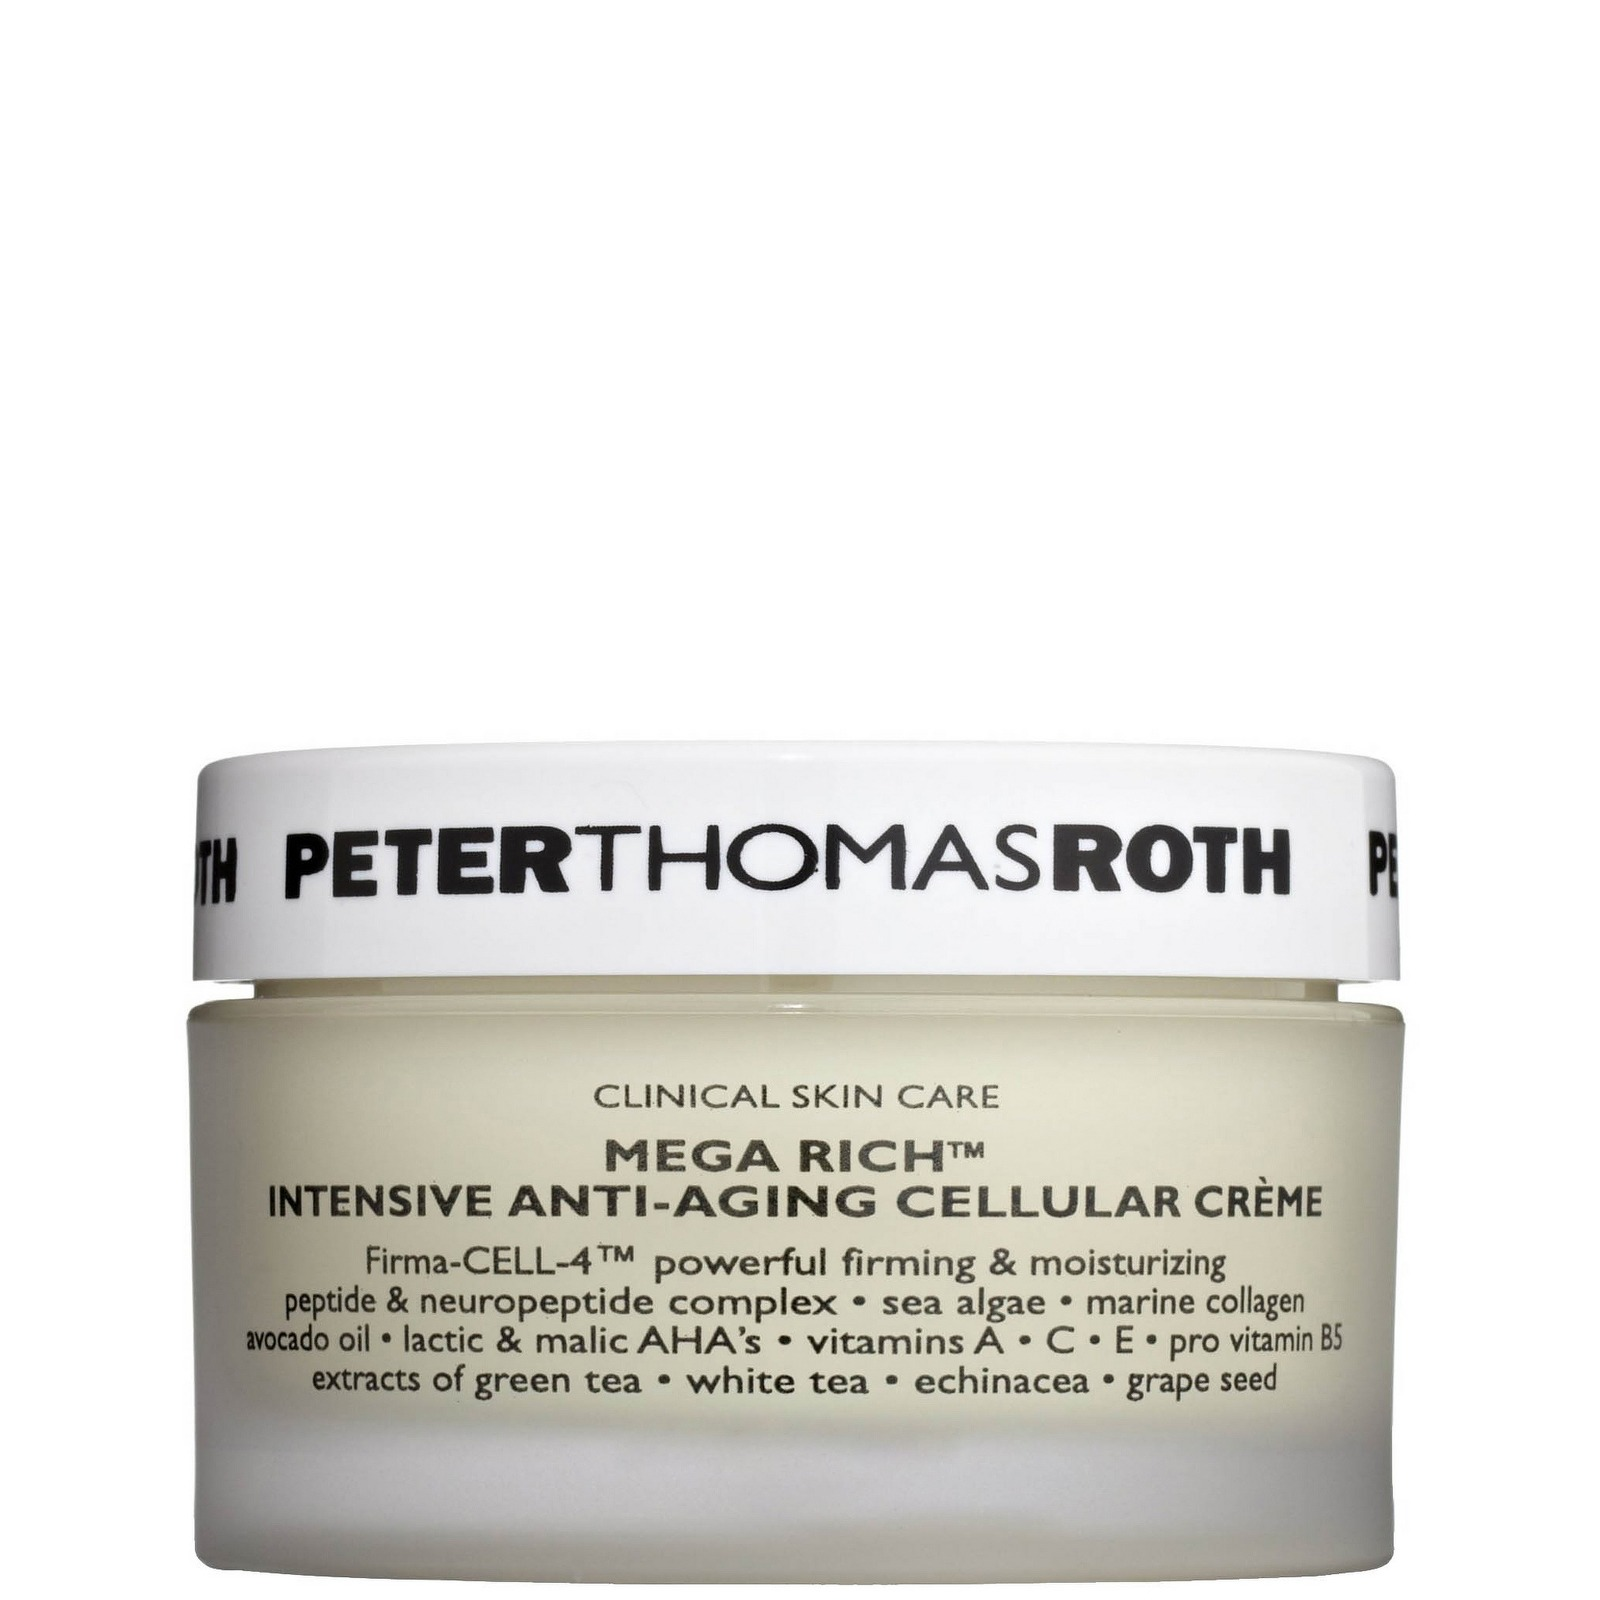 Peter Thomas Roth Mega-Rich Intensive Anti-Aging Cellular Crème 50ml